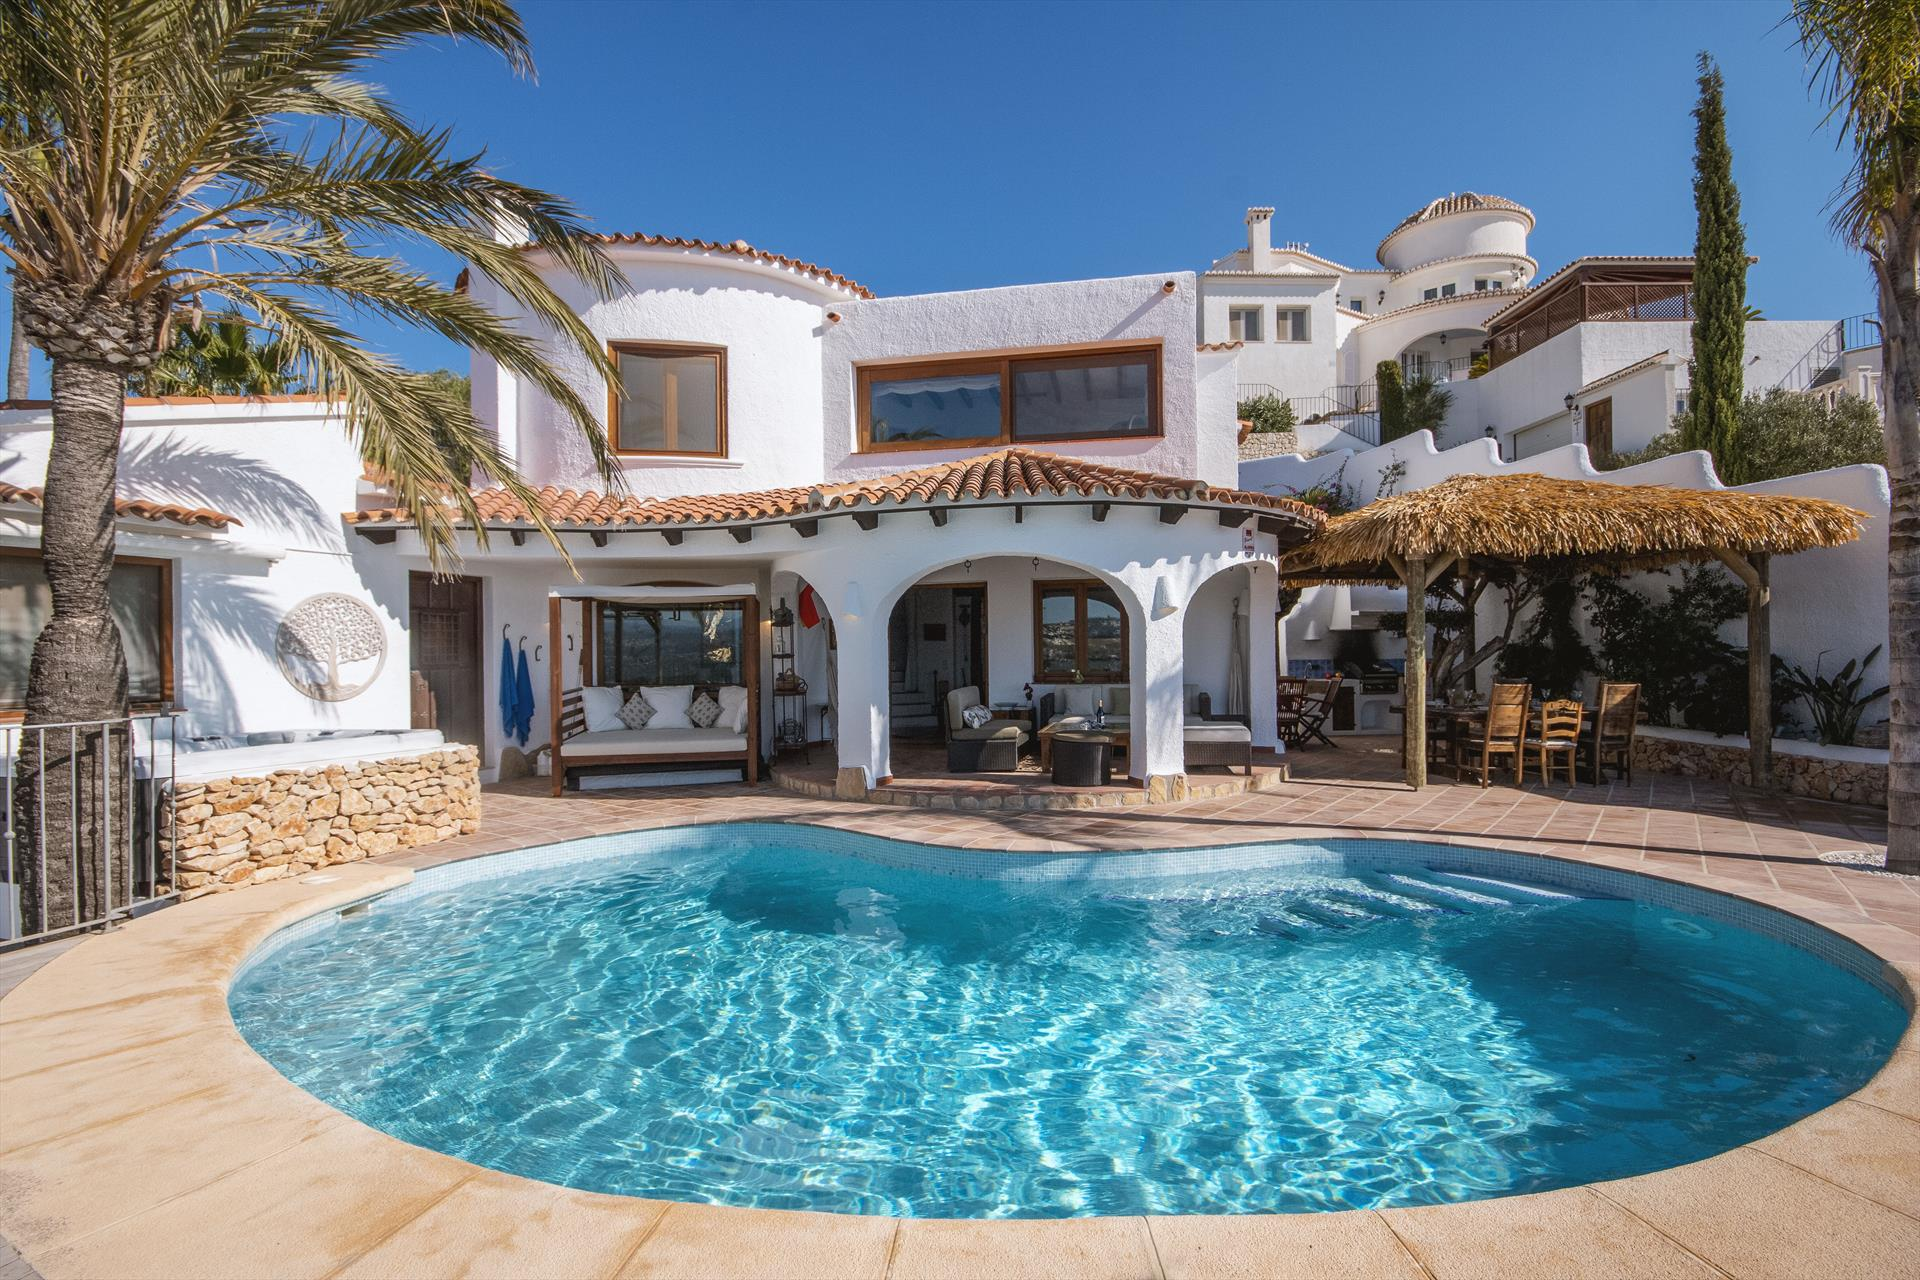 Mira al Mar 8 pax, Rustic and cheerful villa in Moraira, on the Costa Blanca, Spain  with private pool for 8 persons.....